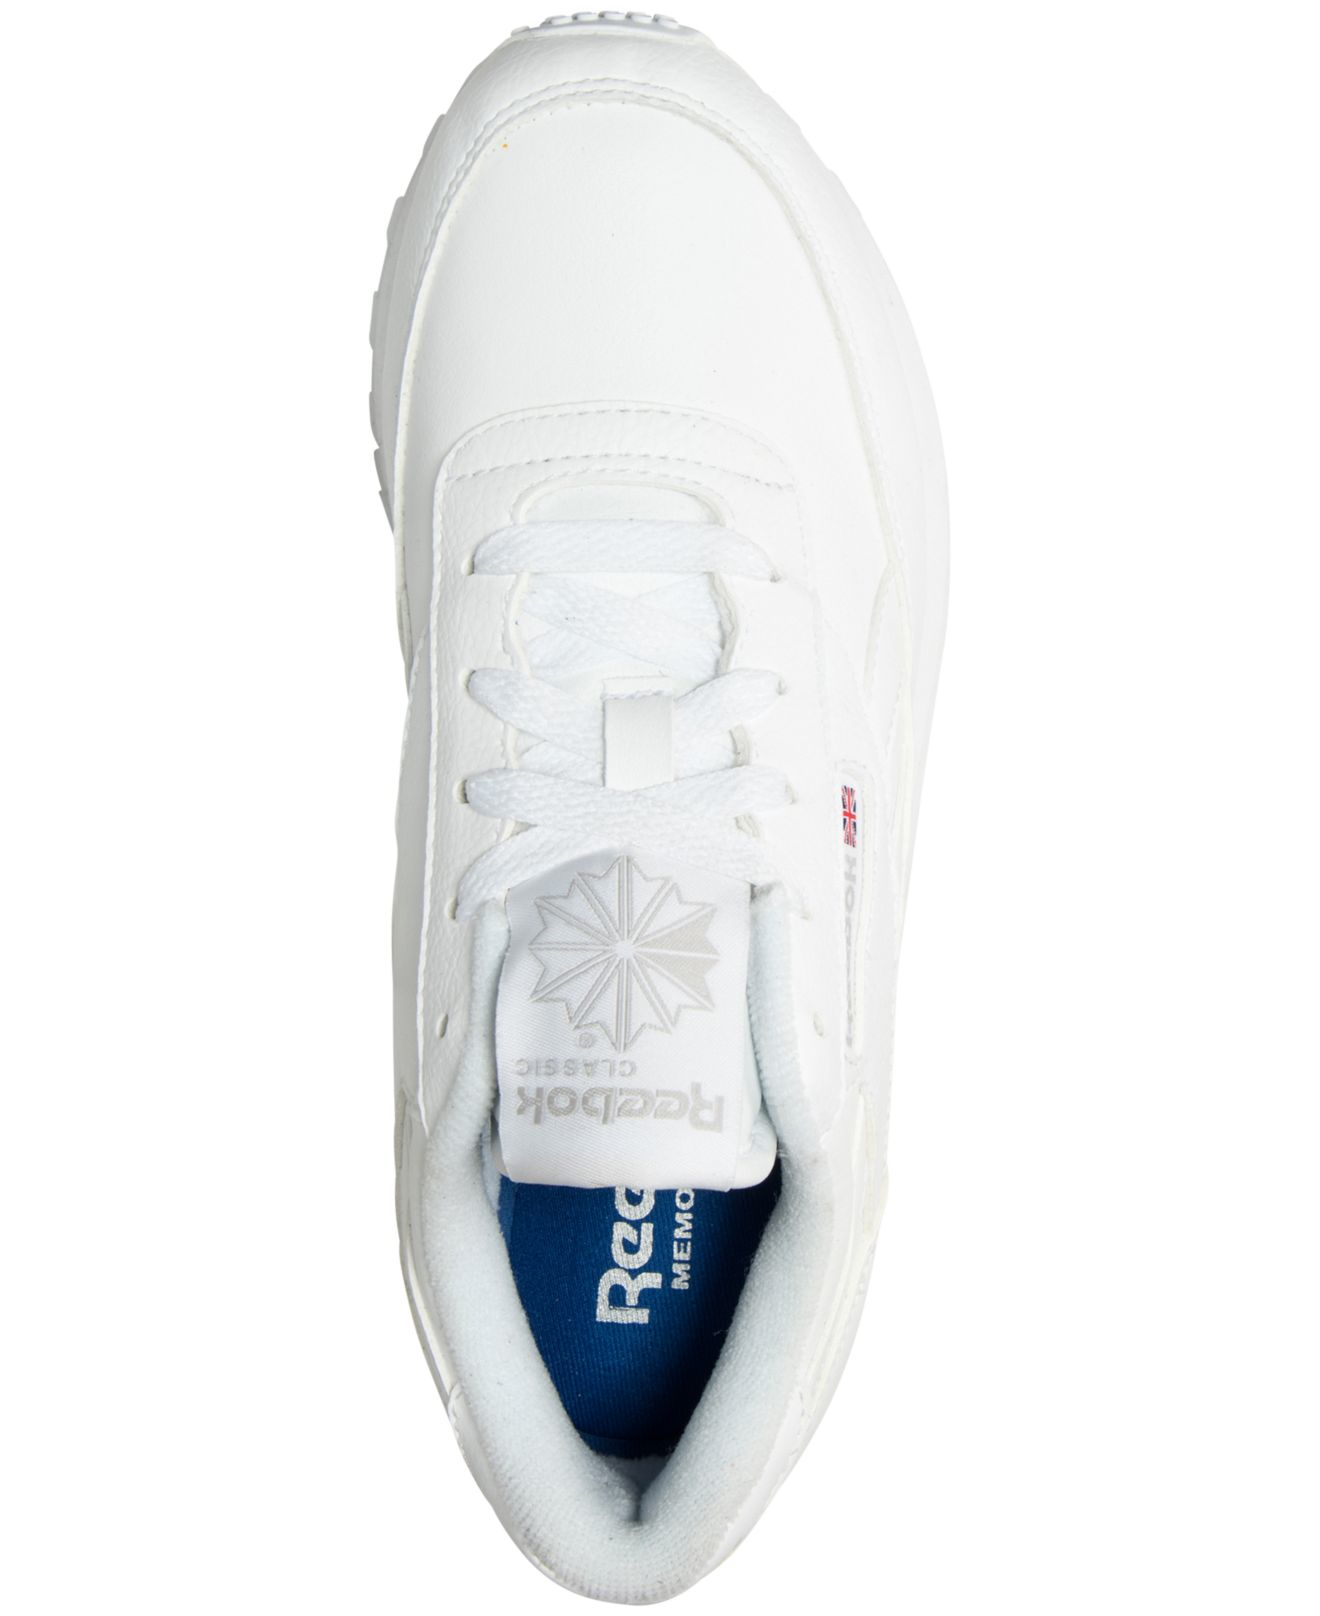 940a3f46222aa5 Lyst - Reebok Women s Classic Renaissance Casual Sneakers From ...